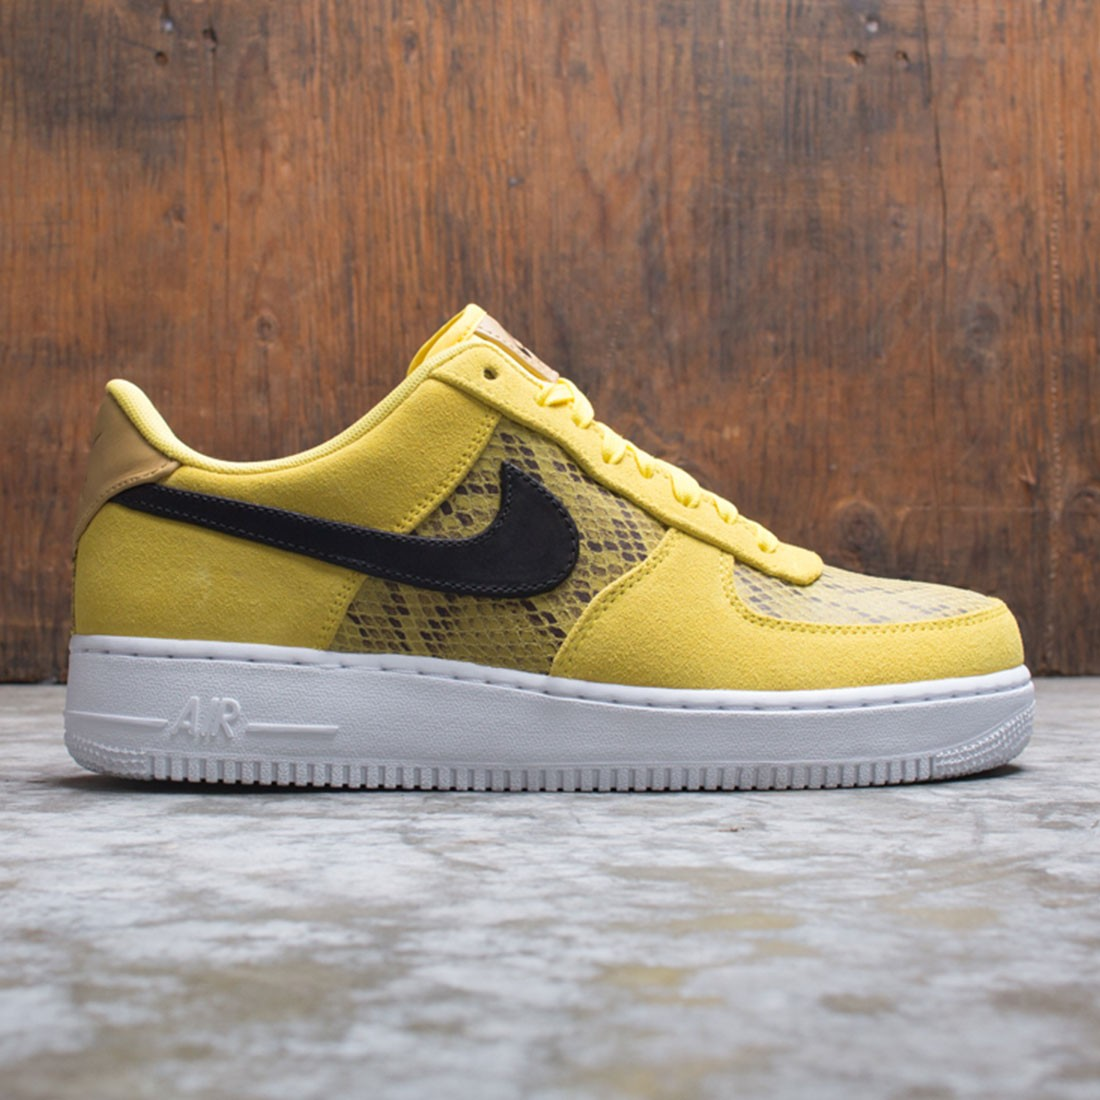 Nike Men Air Force 1 07 Premium Chrome Yellow Black Club Gold White